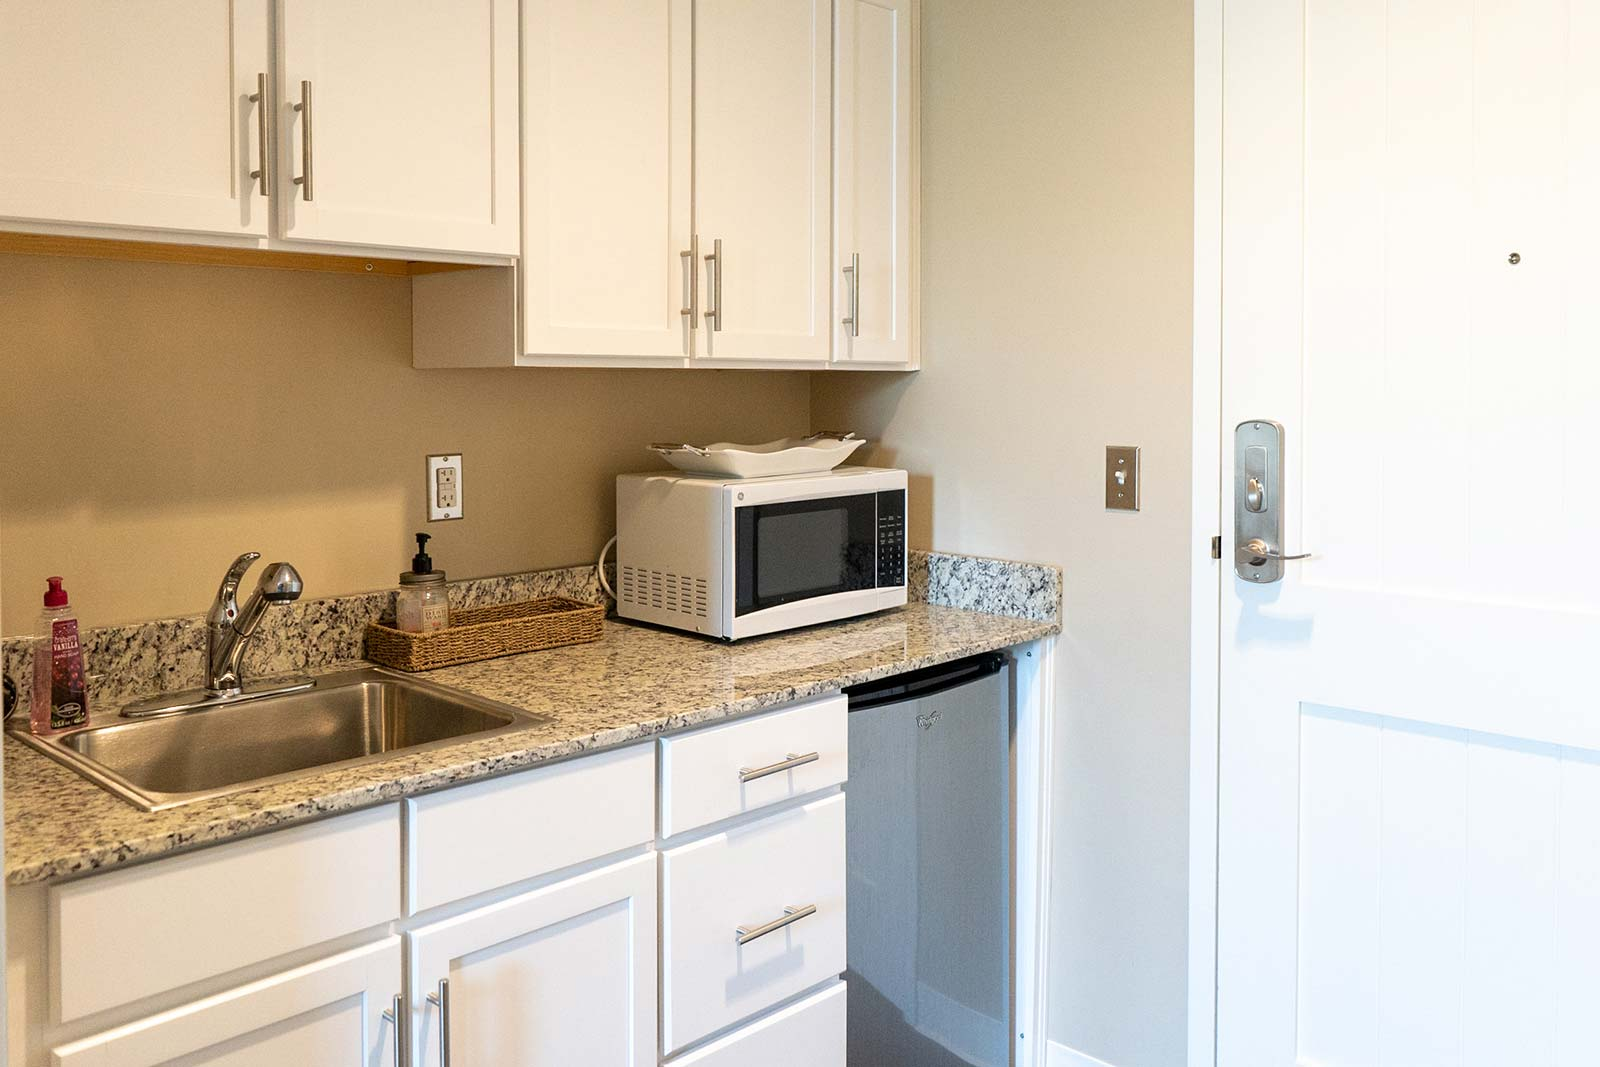 Assisted living apartment kitchenette at The Arbors of Gulf Breeze in Gulf Breeze, FL